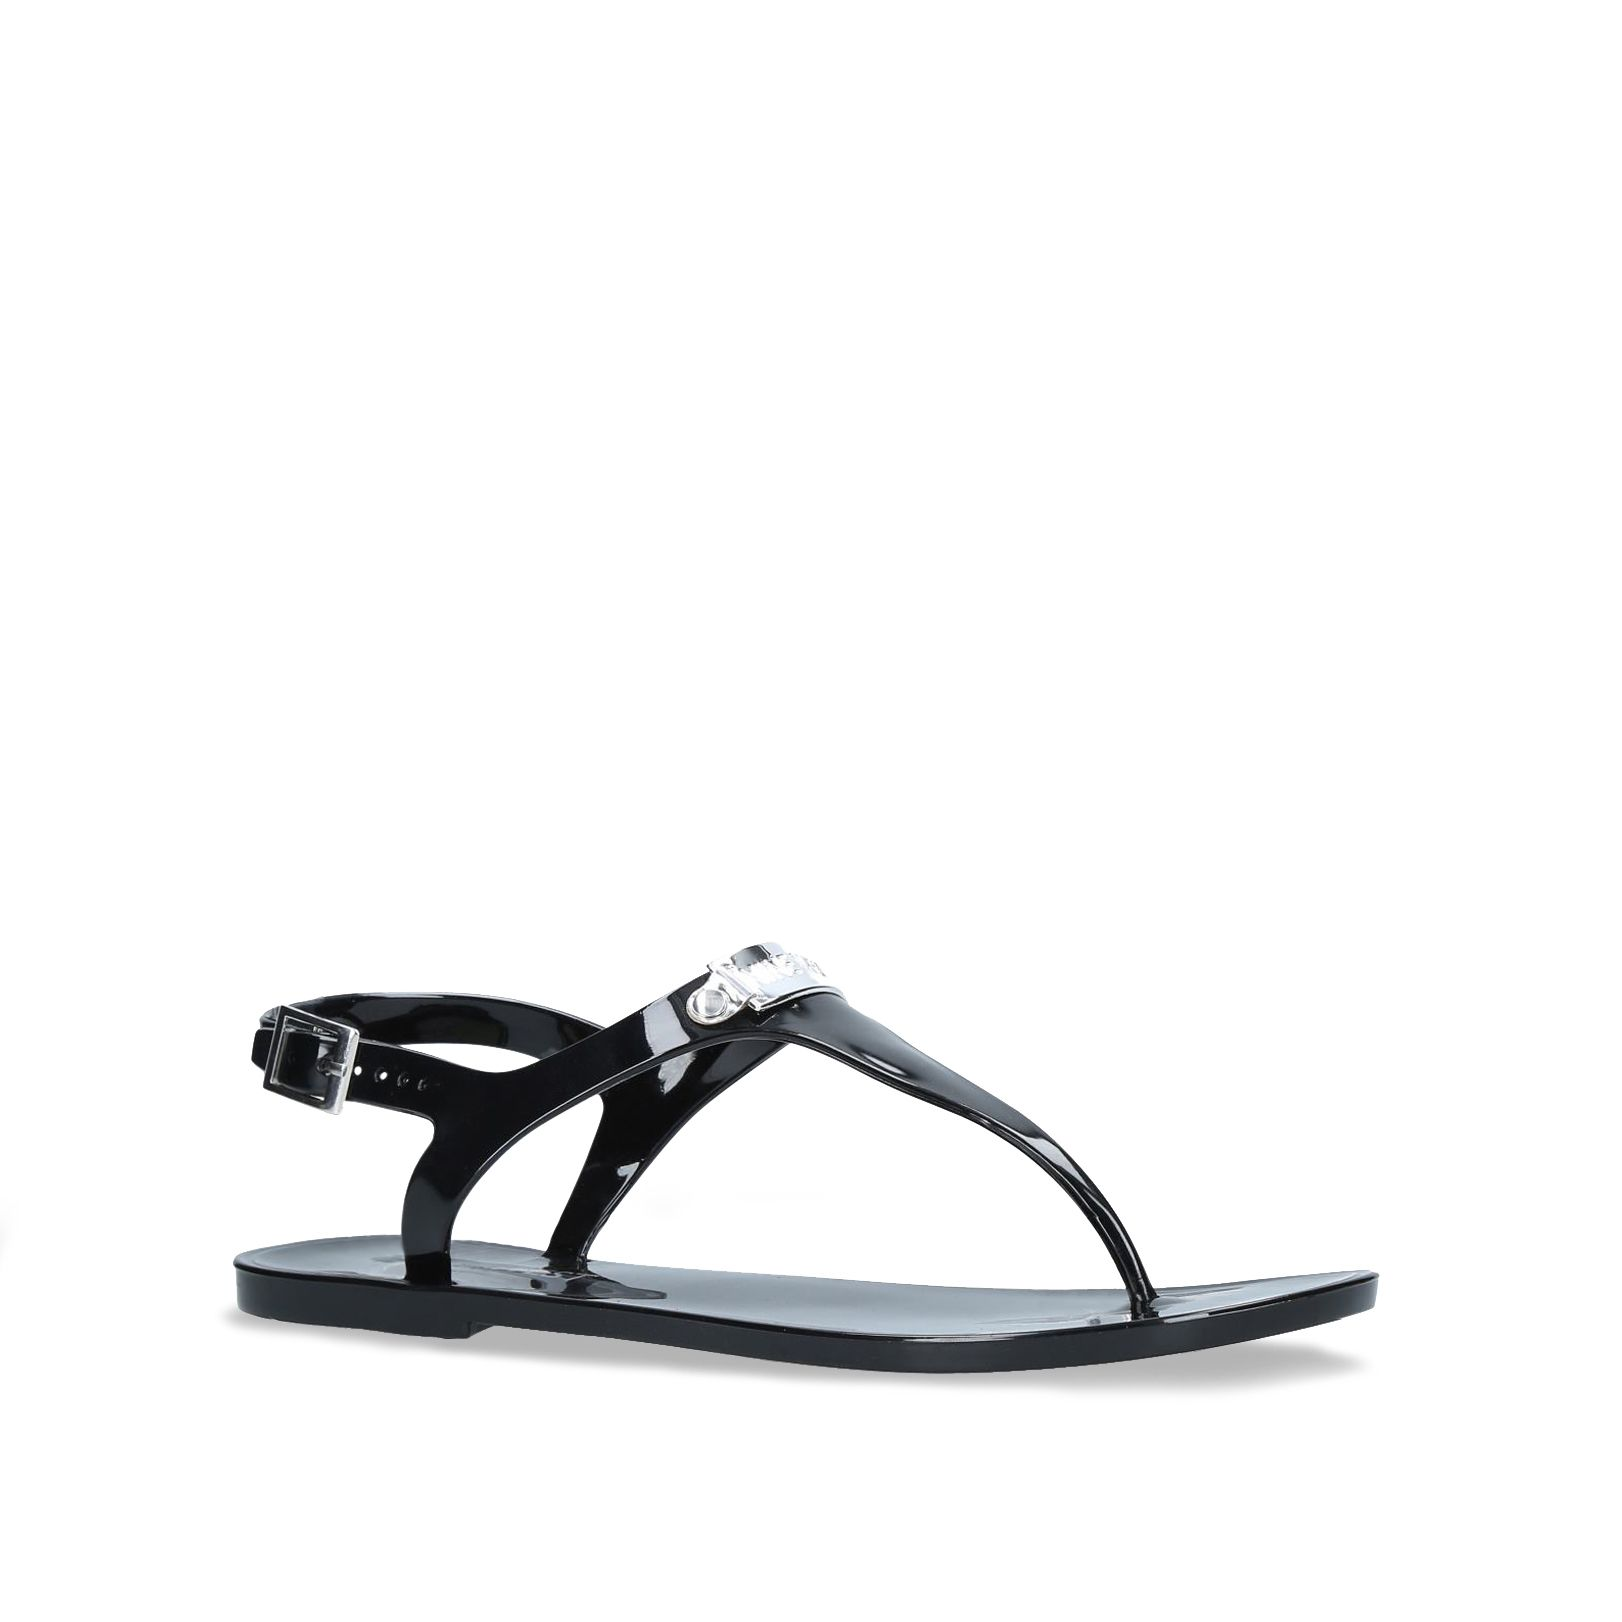 Nine West Jasmine Sandals, Black